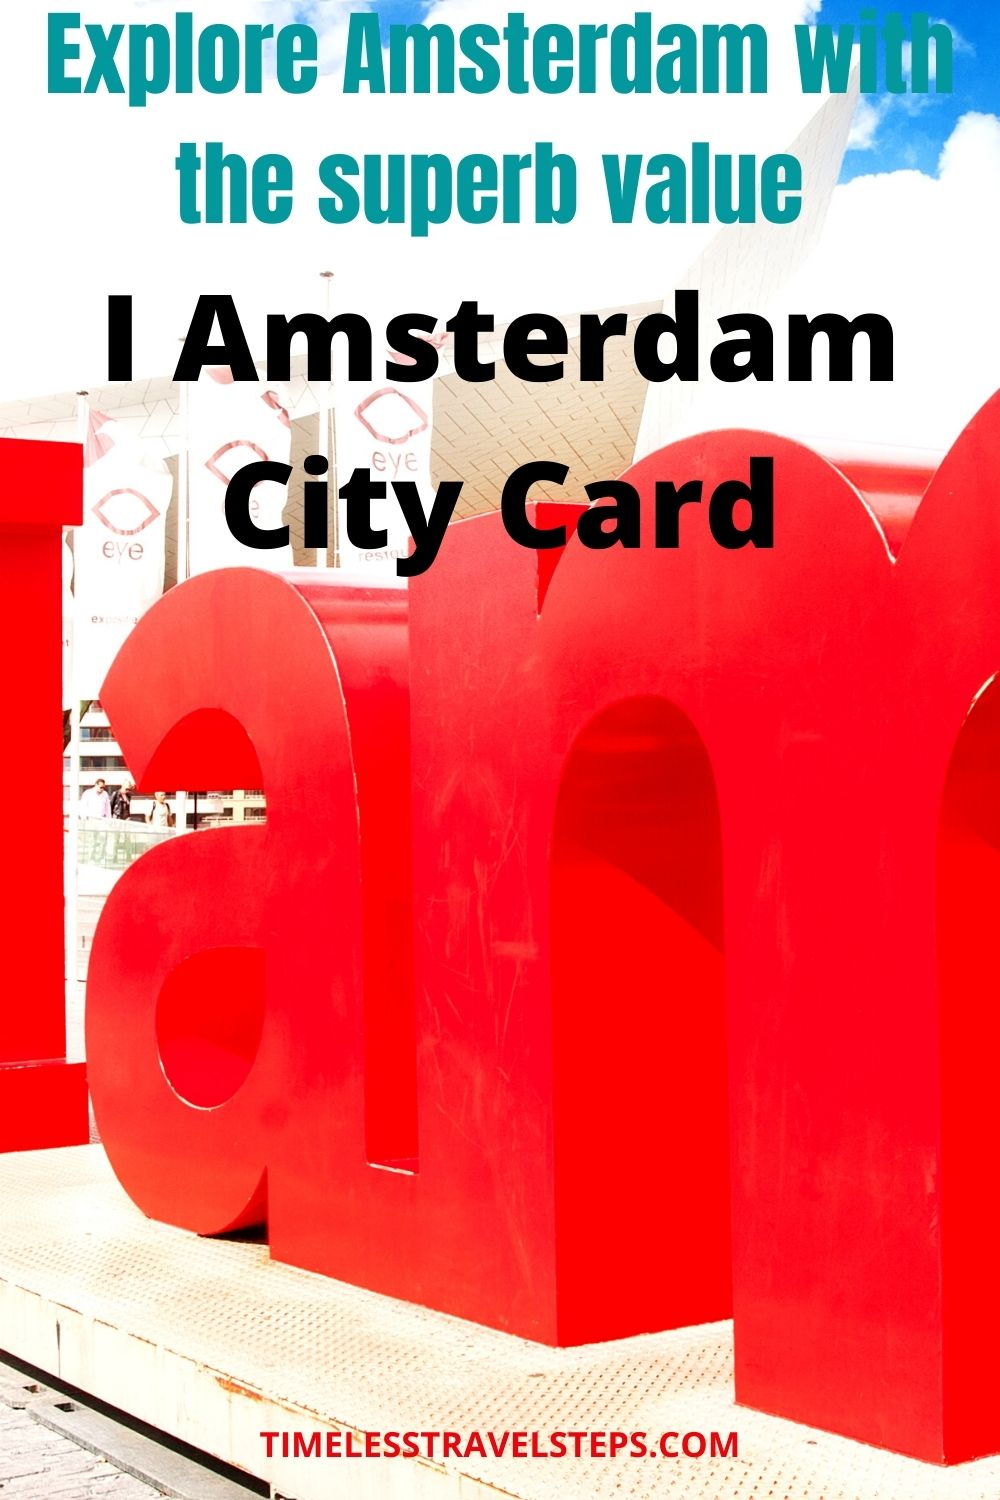 Save money while attraction hopping and dining and in some instances, priority access avoiding the long queues - Explore the city of culture with the superb value I Amsterdam City Card via @GGeorgina_timelesstravelsteps/